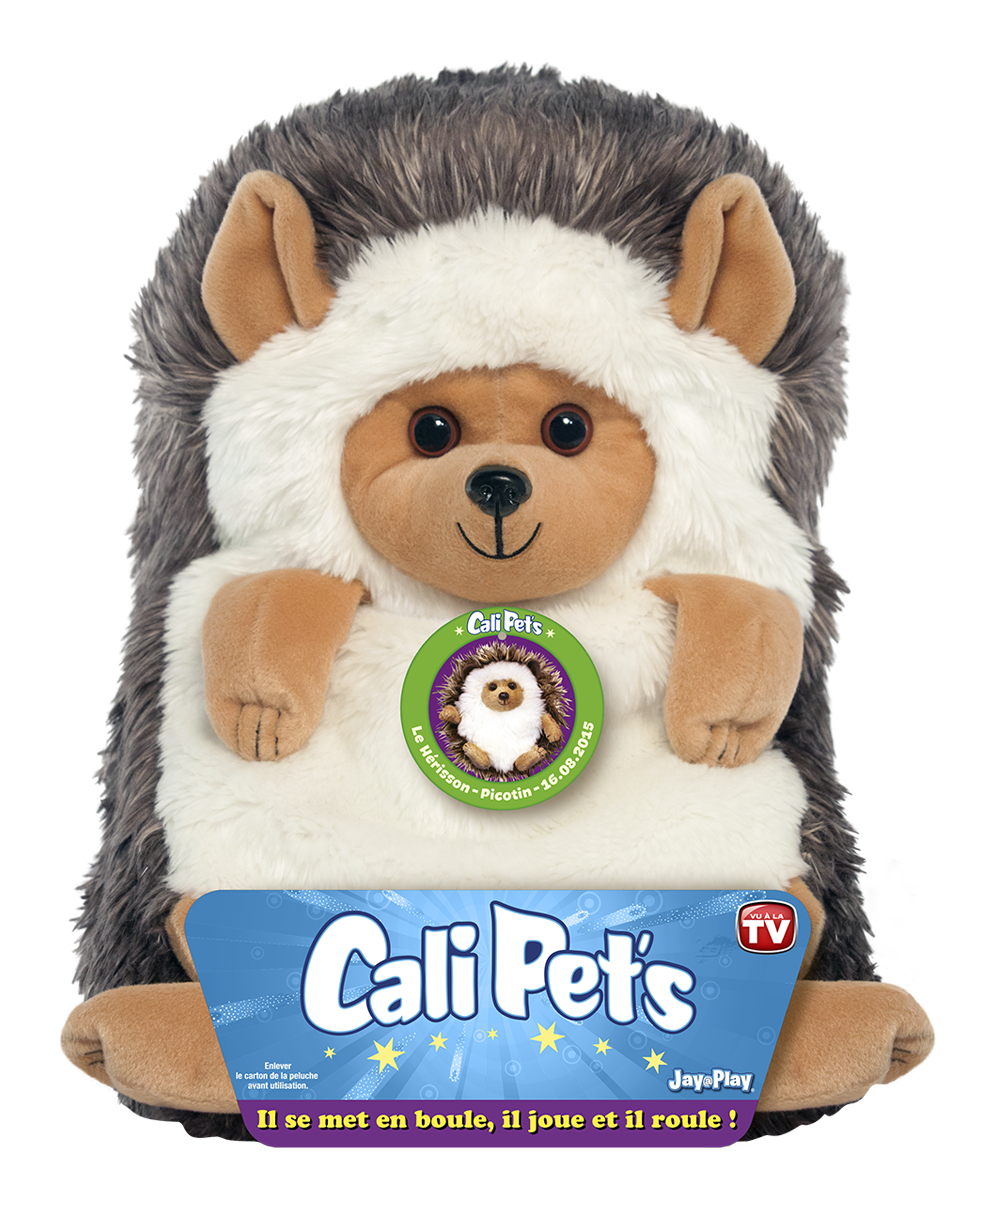 Packaging Cali Pets Hérisson